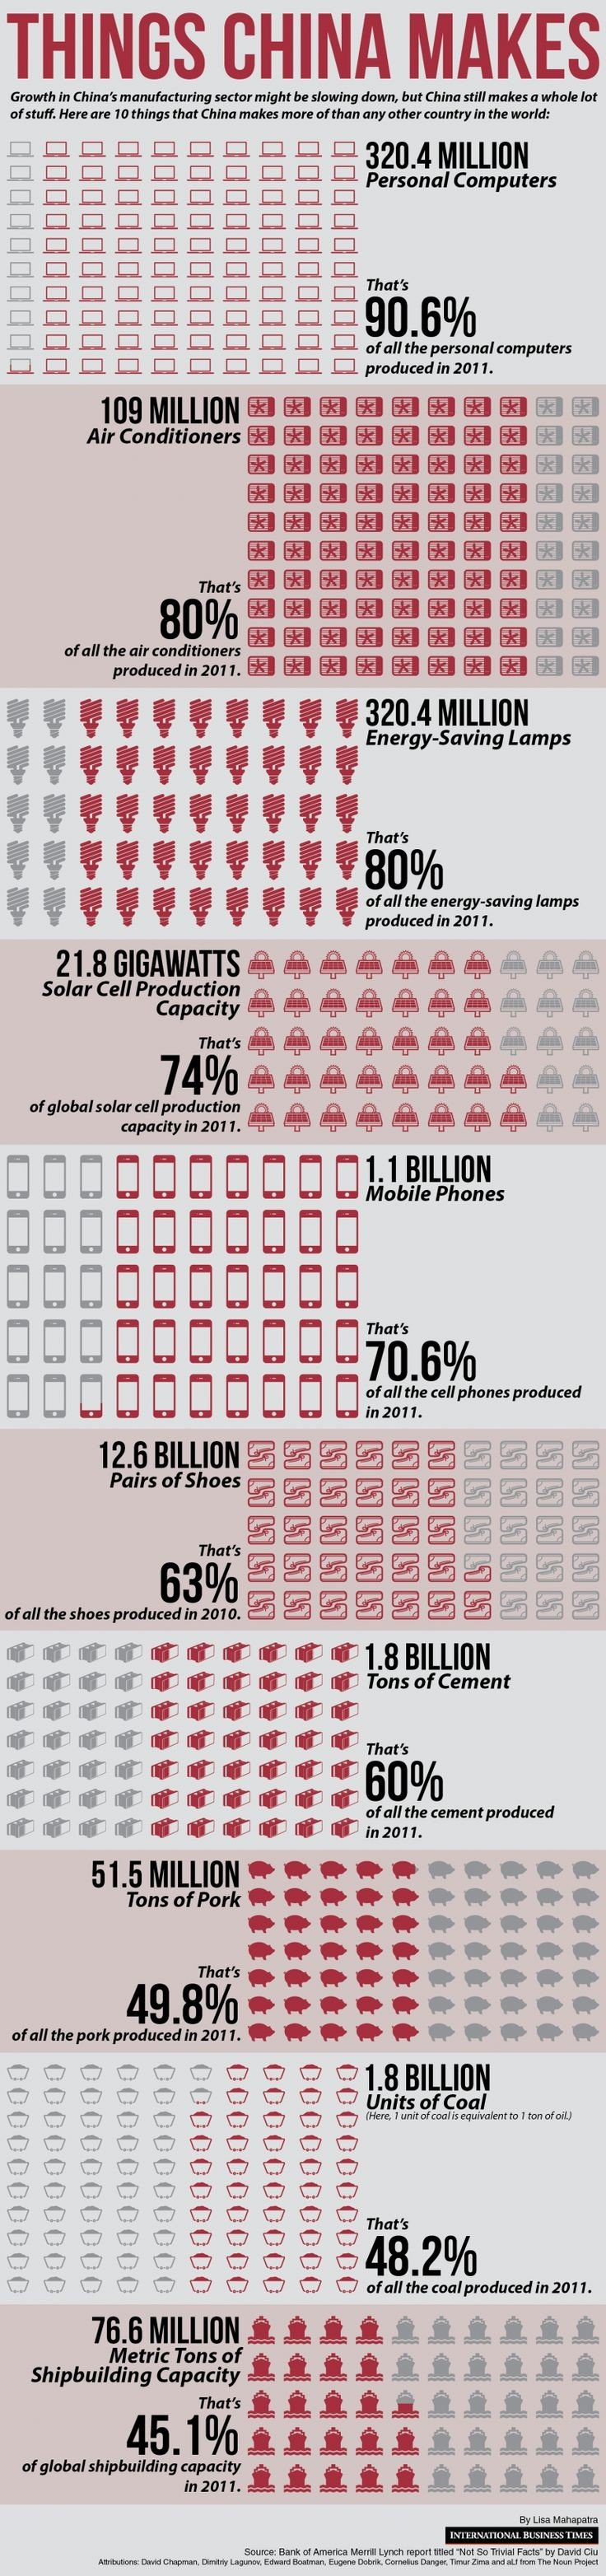 Things that #China makes #Infographic #Economy